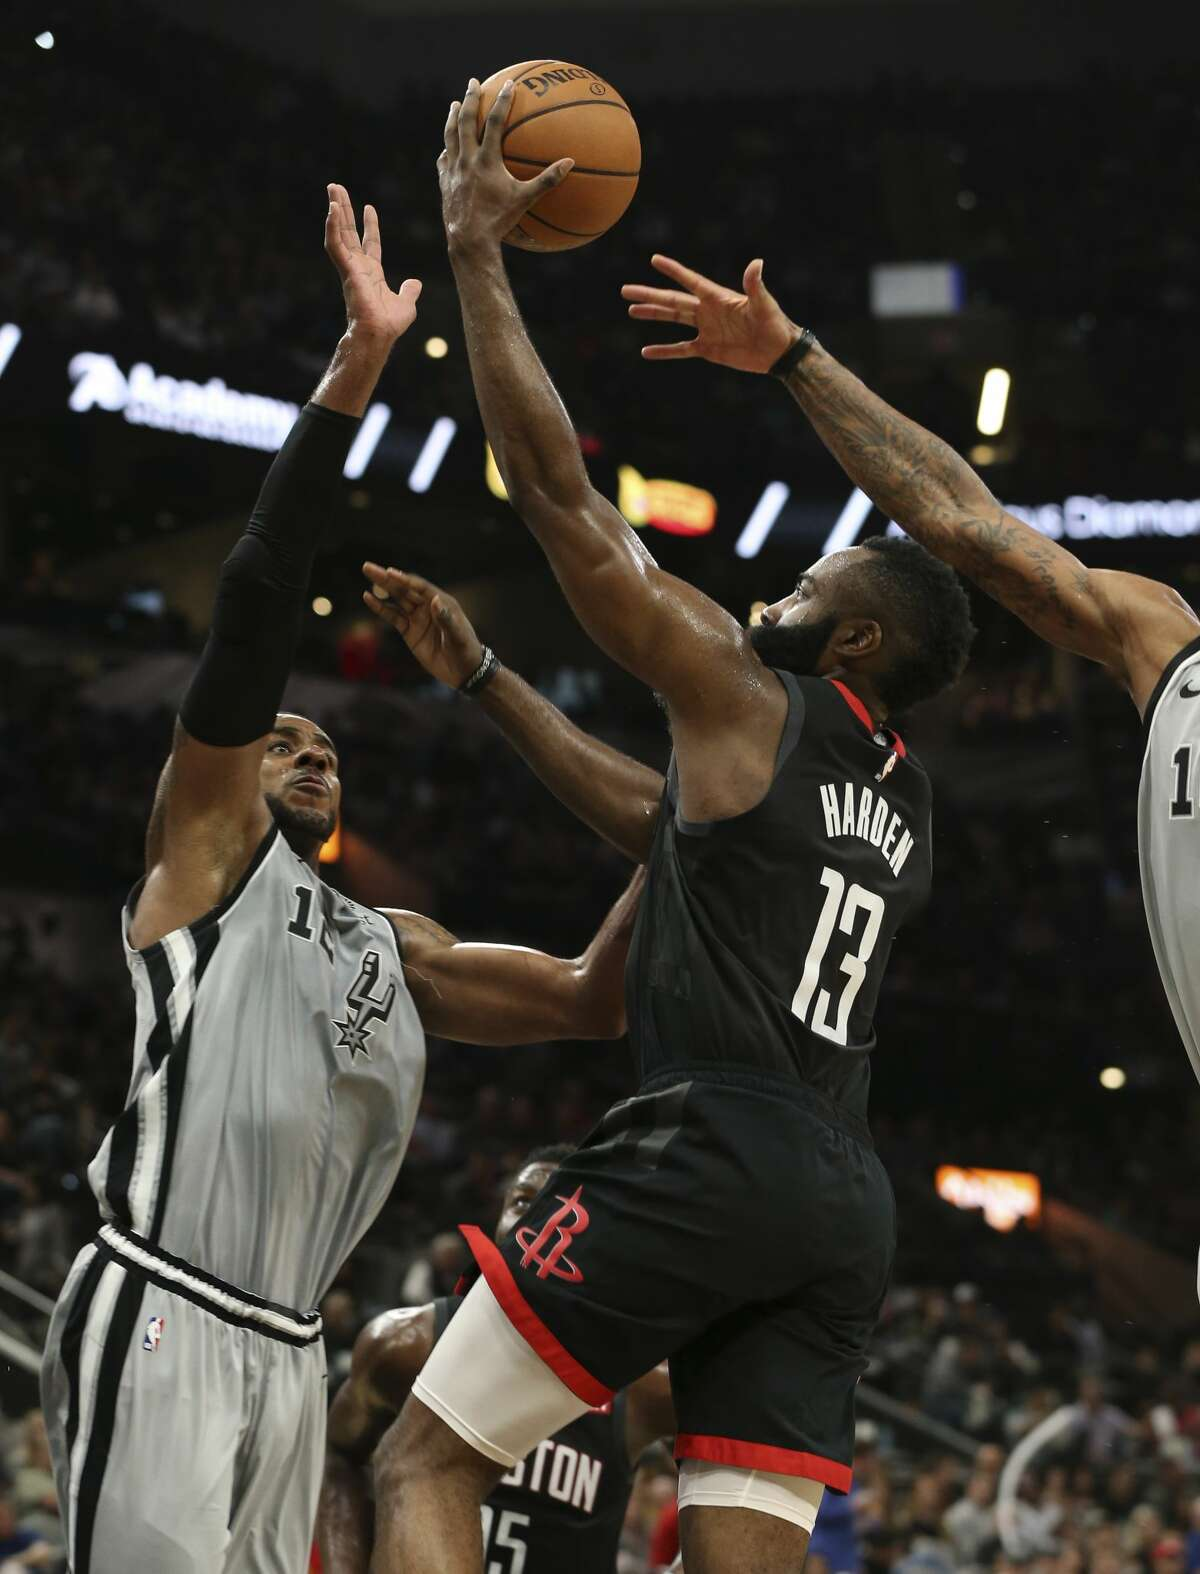 Houston Rocket's James Harden (13) goes up for a shot against Spurs' LaMarcus Aldridge (12) and DeMar DeRozan (10) in the second half at the AT&T Center on Friday, Nov. 30, 2018. Rockets defeated the Spurs, 136-105. (Kin Man Hui/San Antonio Express-News)